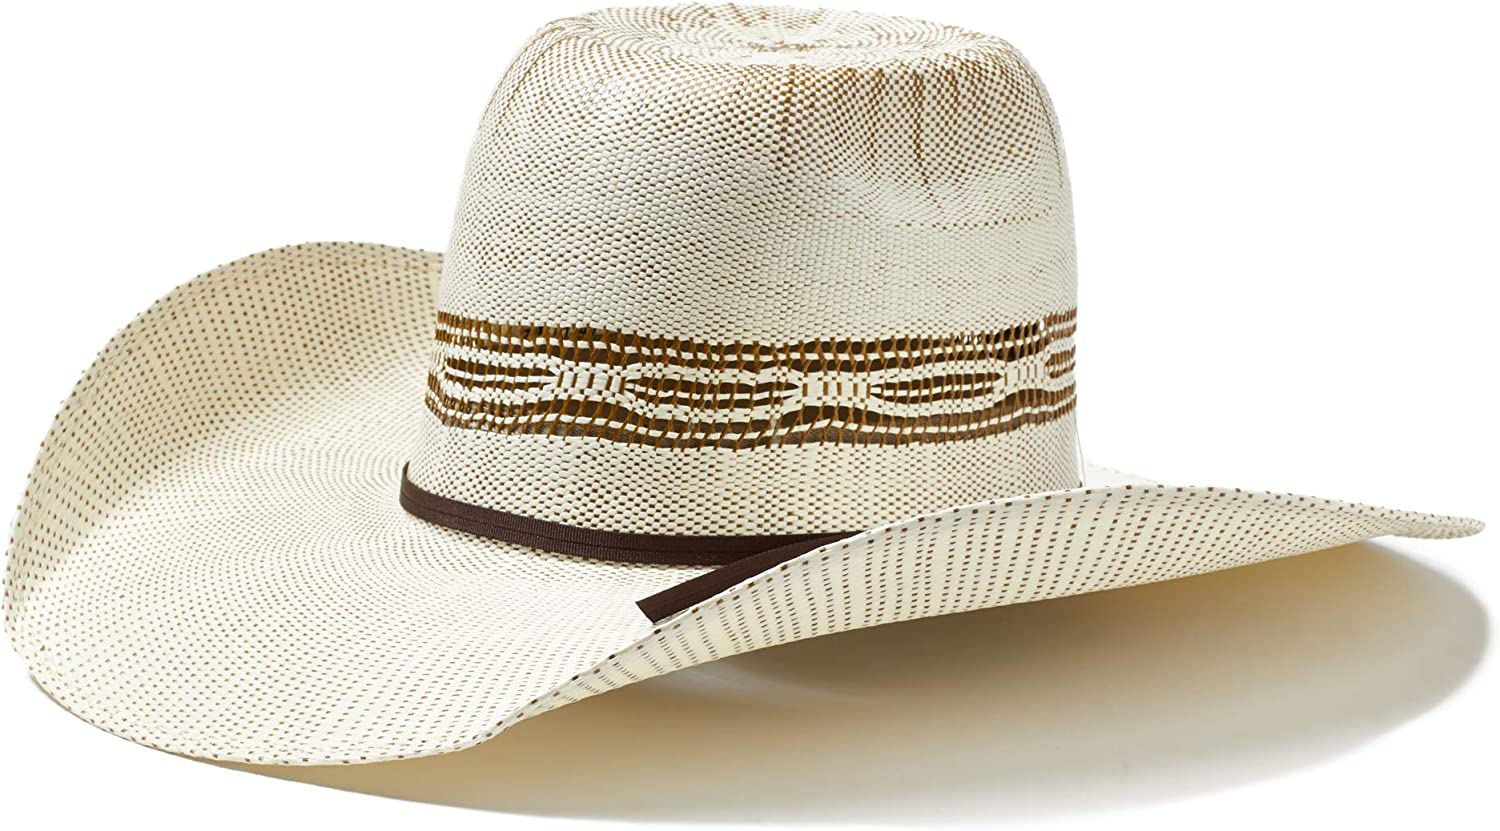 ARIAT Unisex Bangora Limited time trial price Manufacturer regenerated product Straw Hat